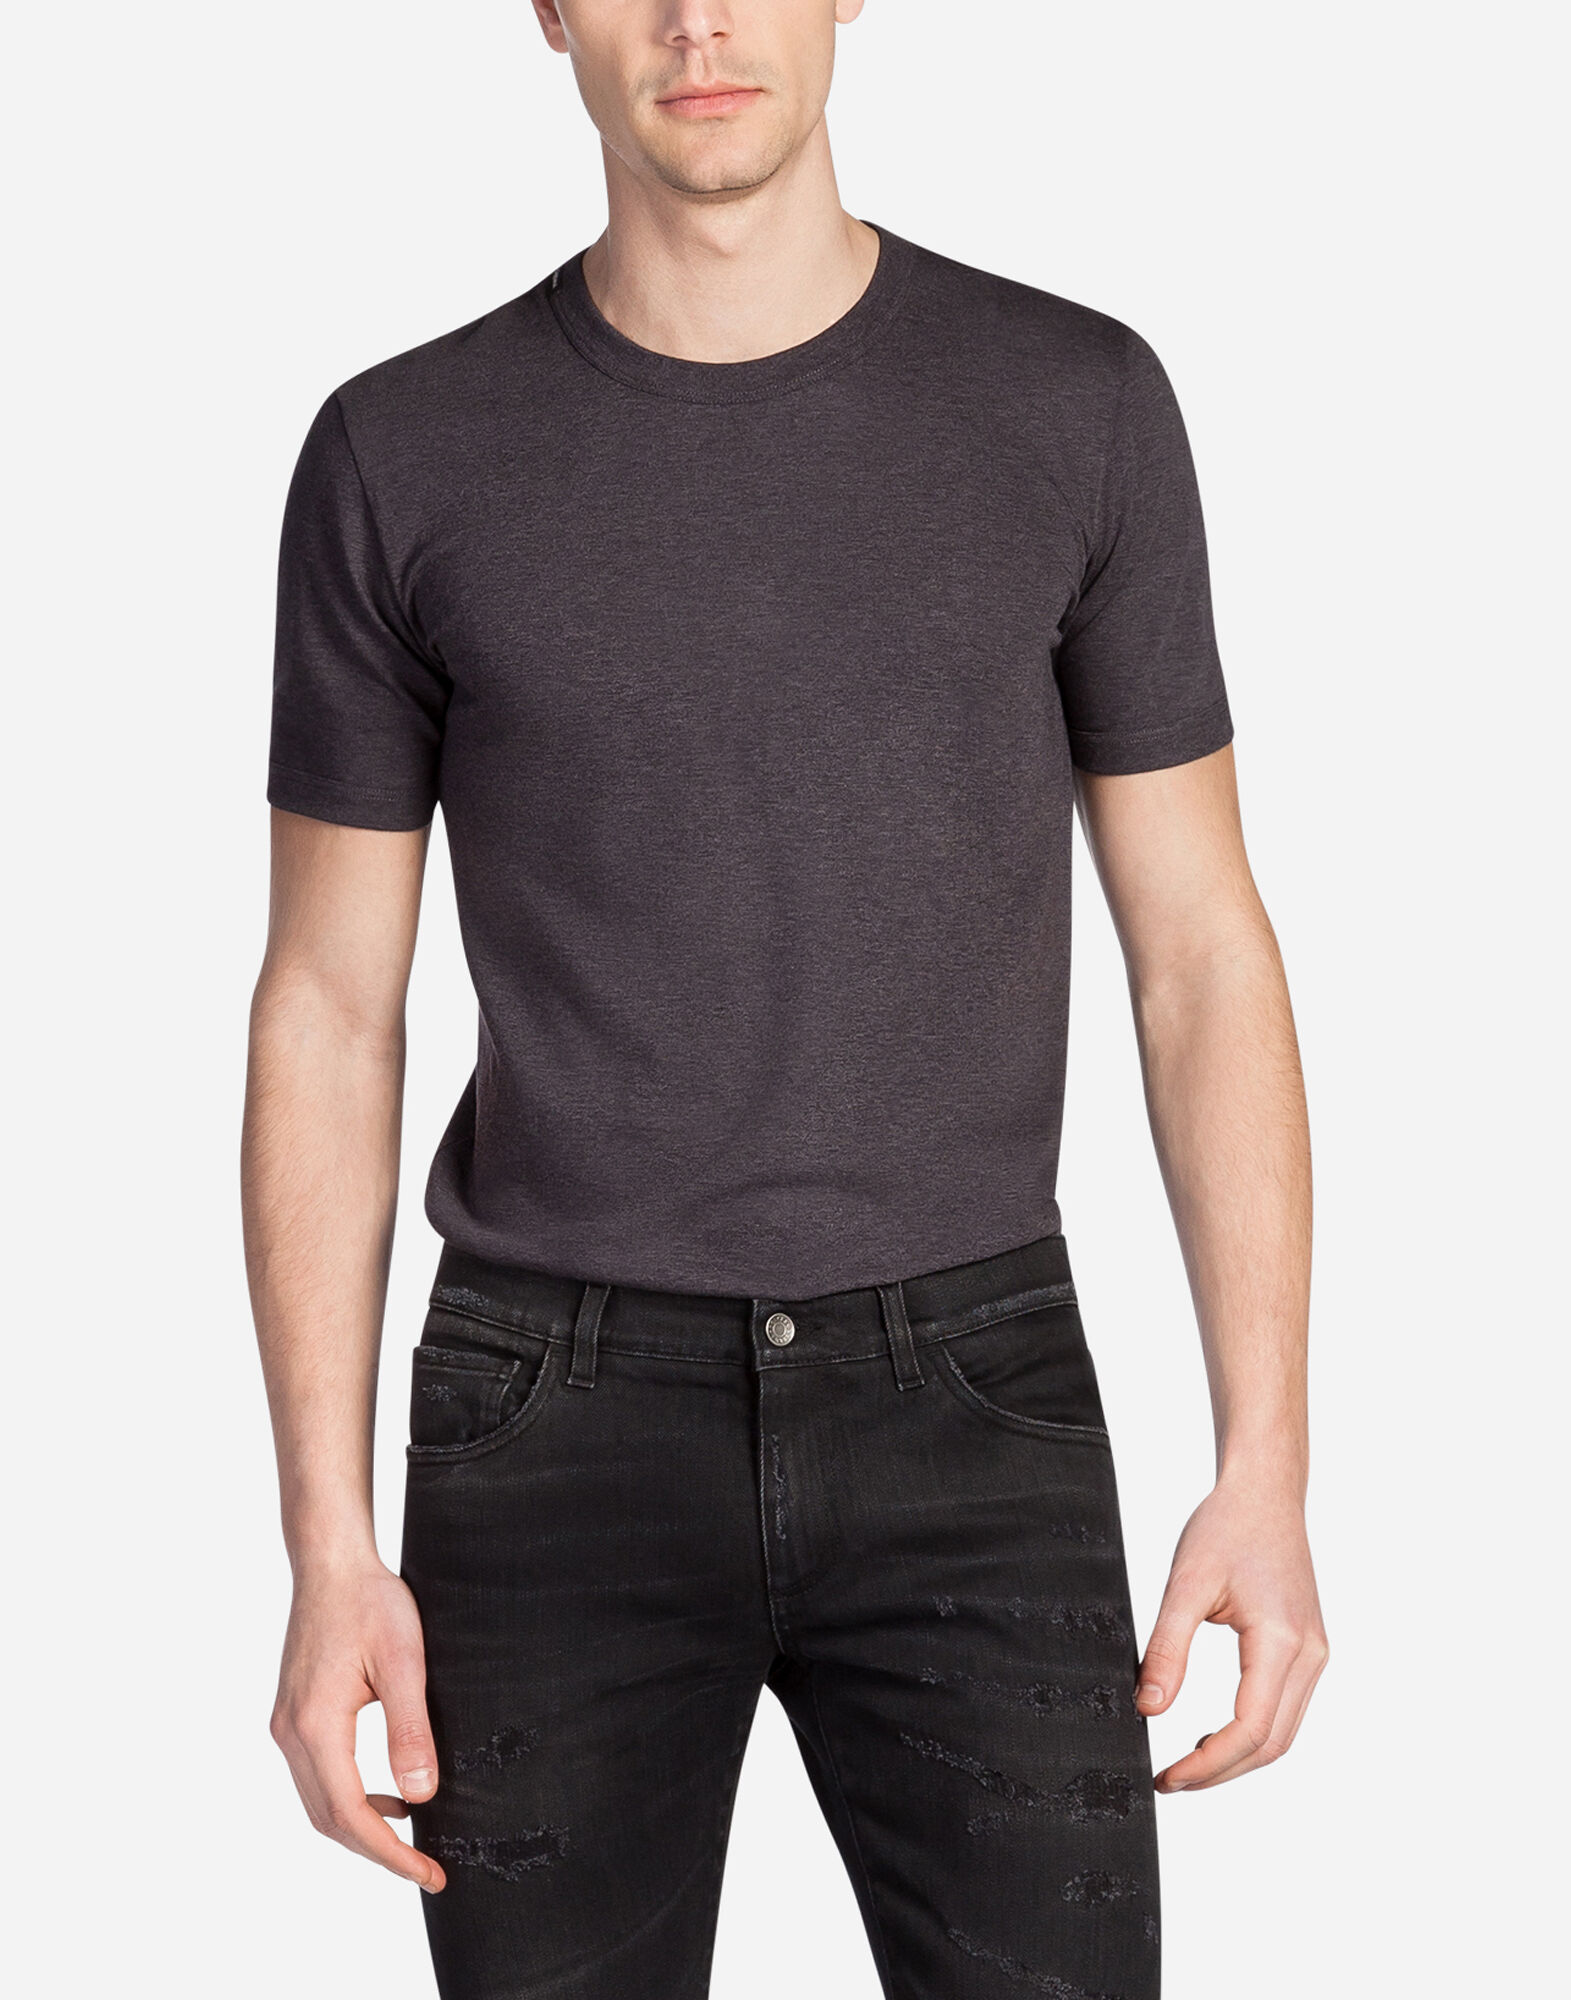 T-SHIRT IN COTTON